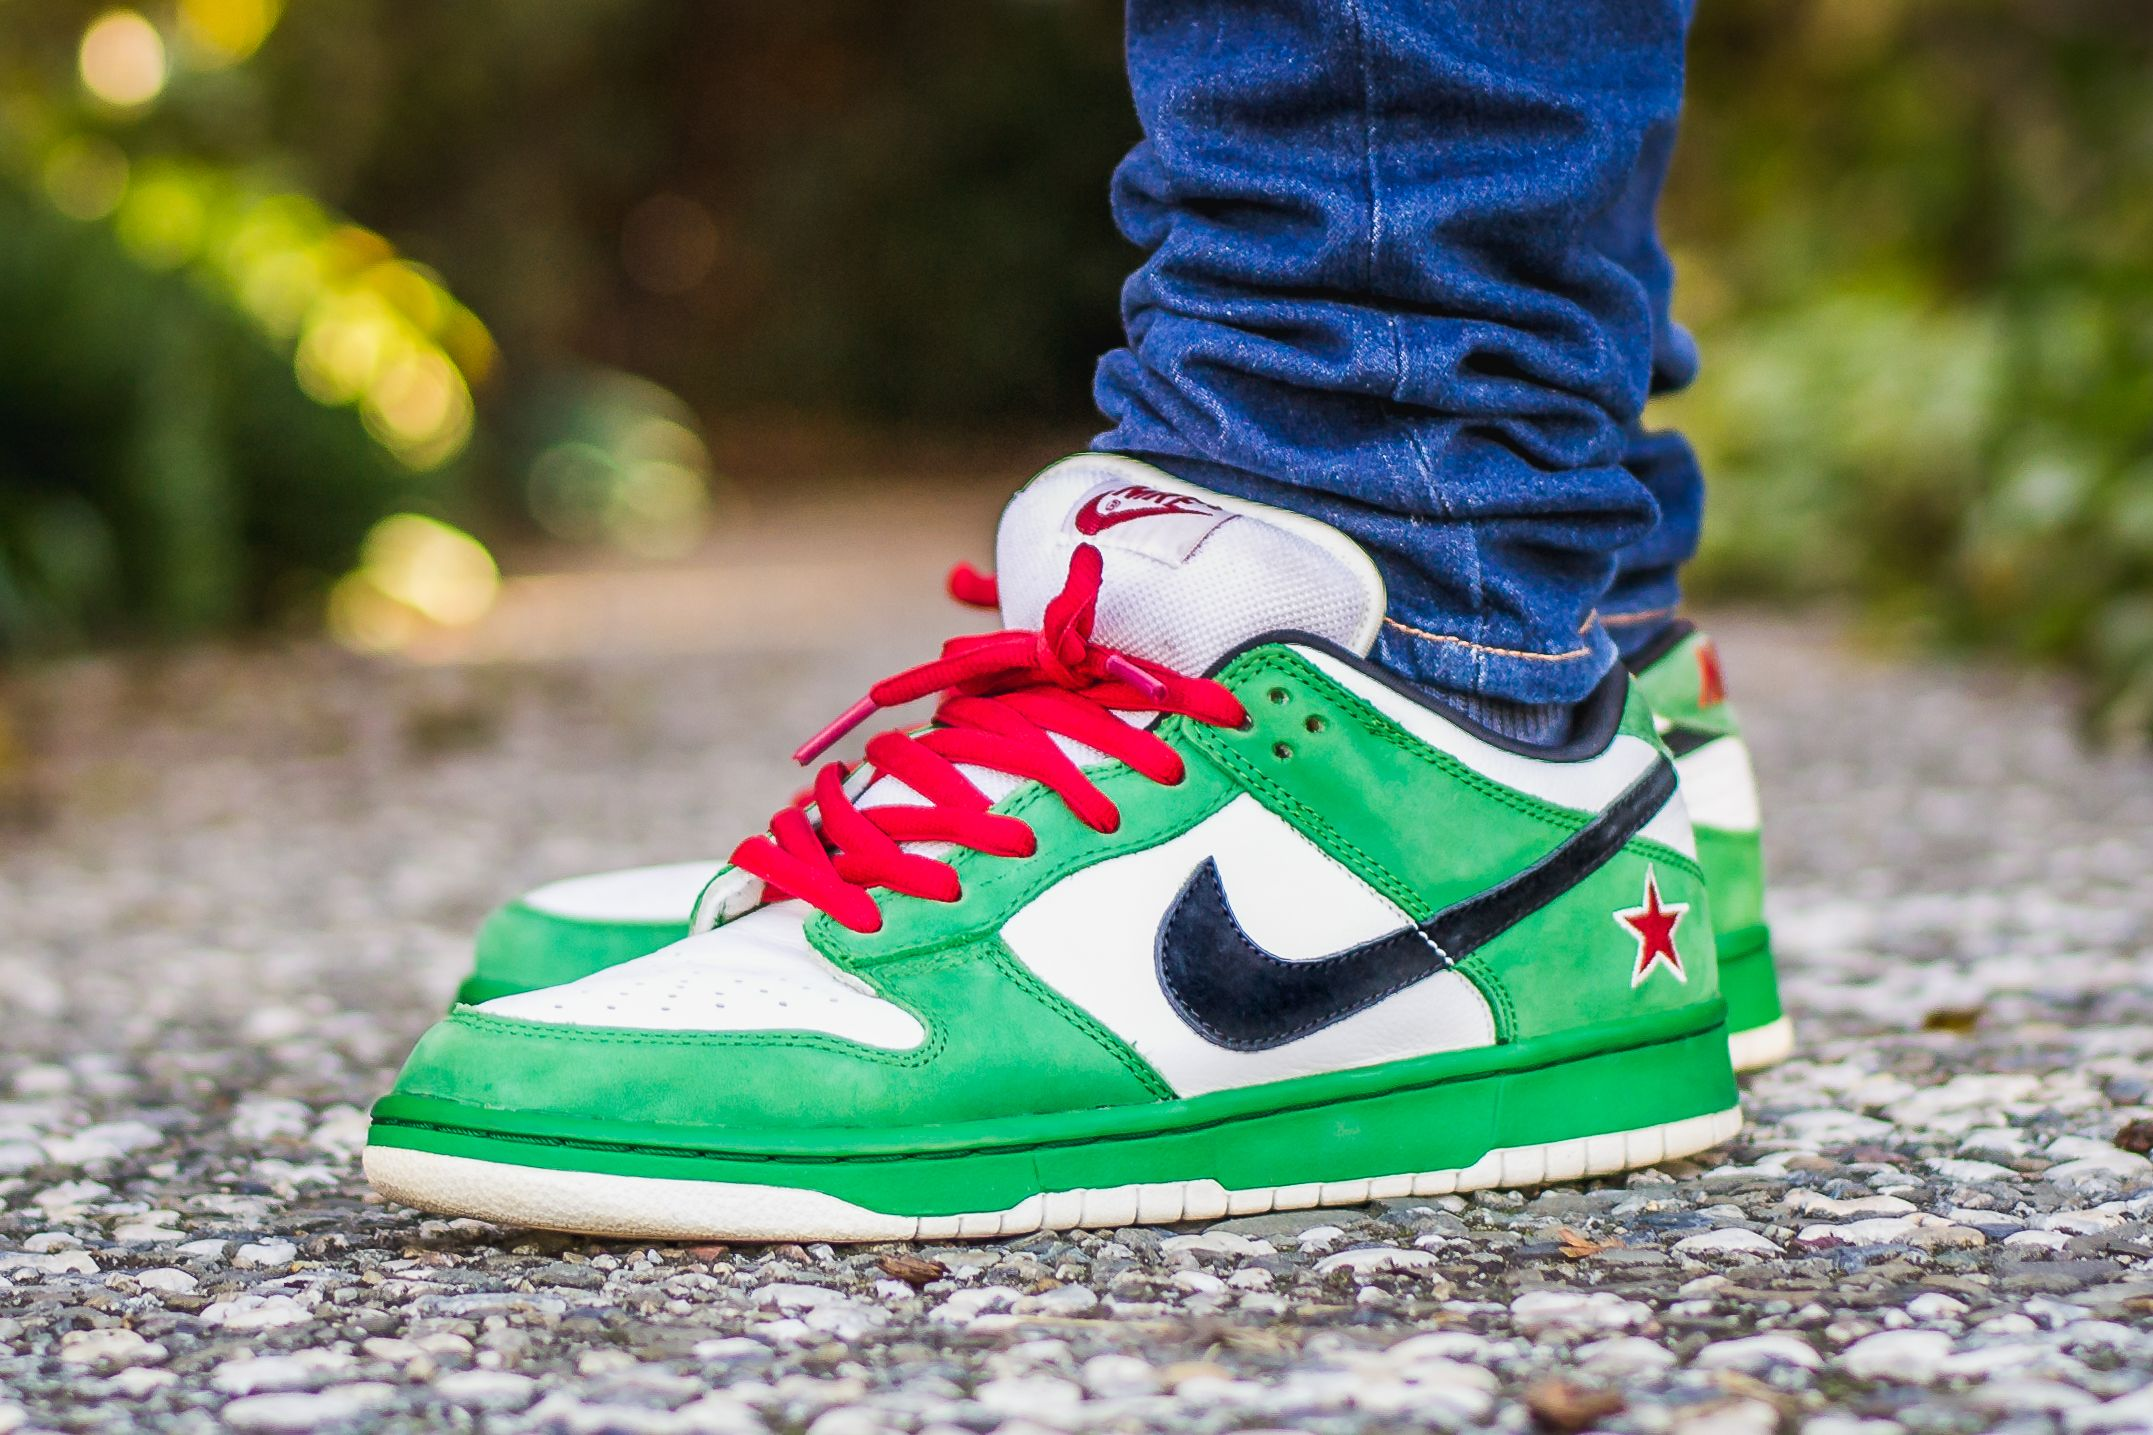 online retailer 6bb03 4b1d4 WDIWT - See my on foot video review of these Nike Dunk Low SB Heineken +  where to find em